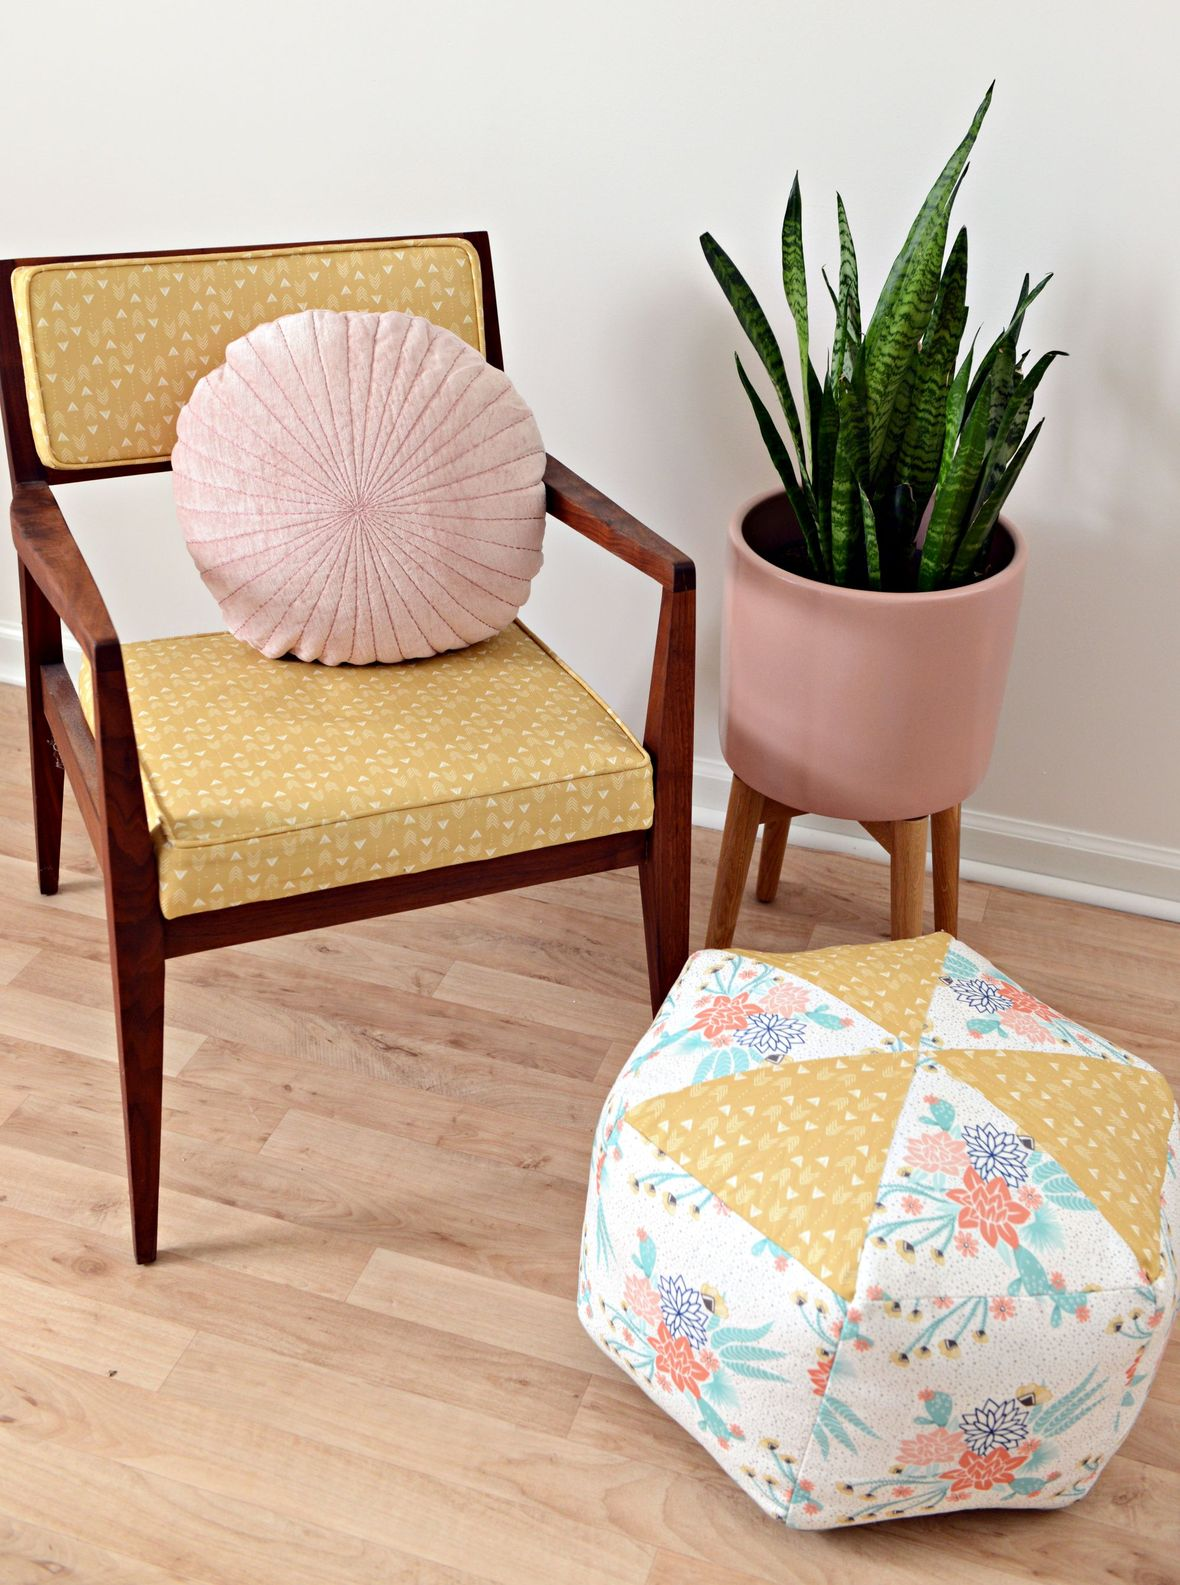 Hawthorne Threads Canvas Chair and Pouf - 2000.png